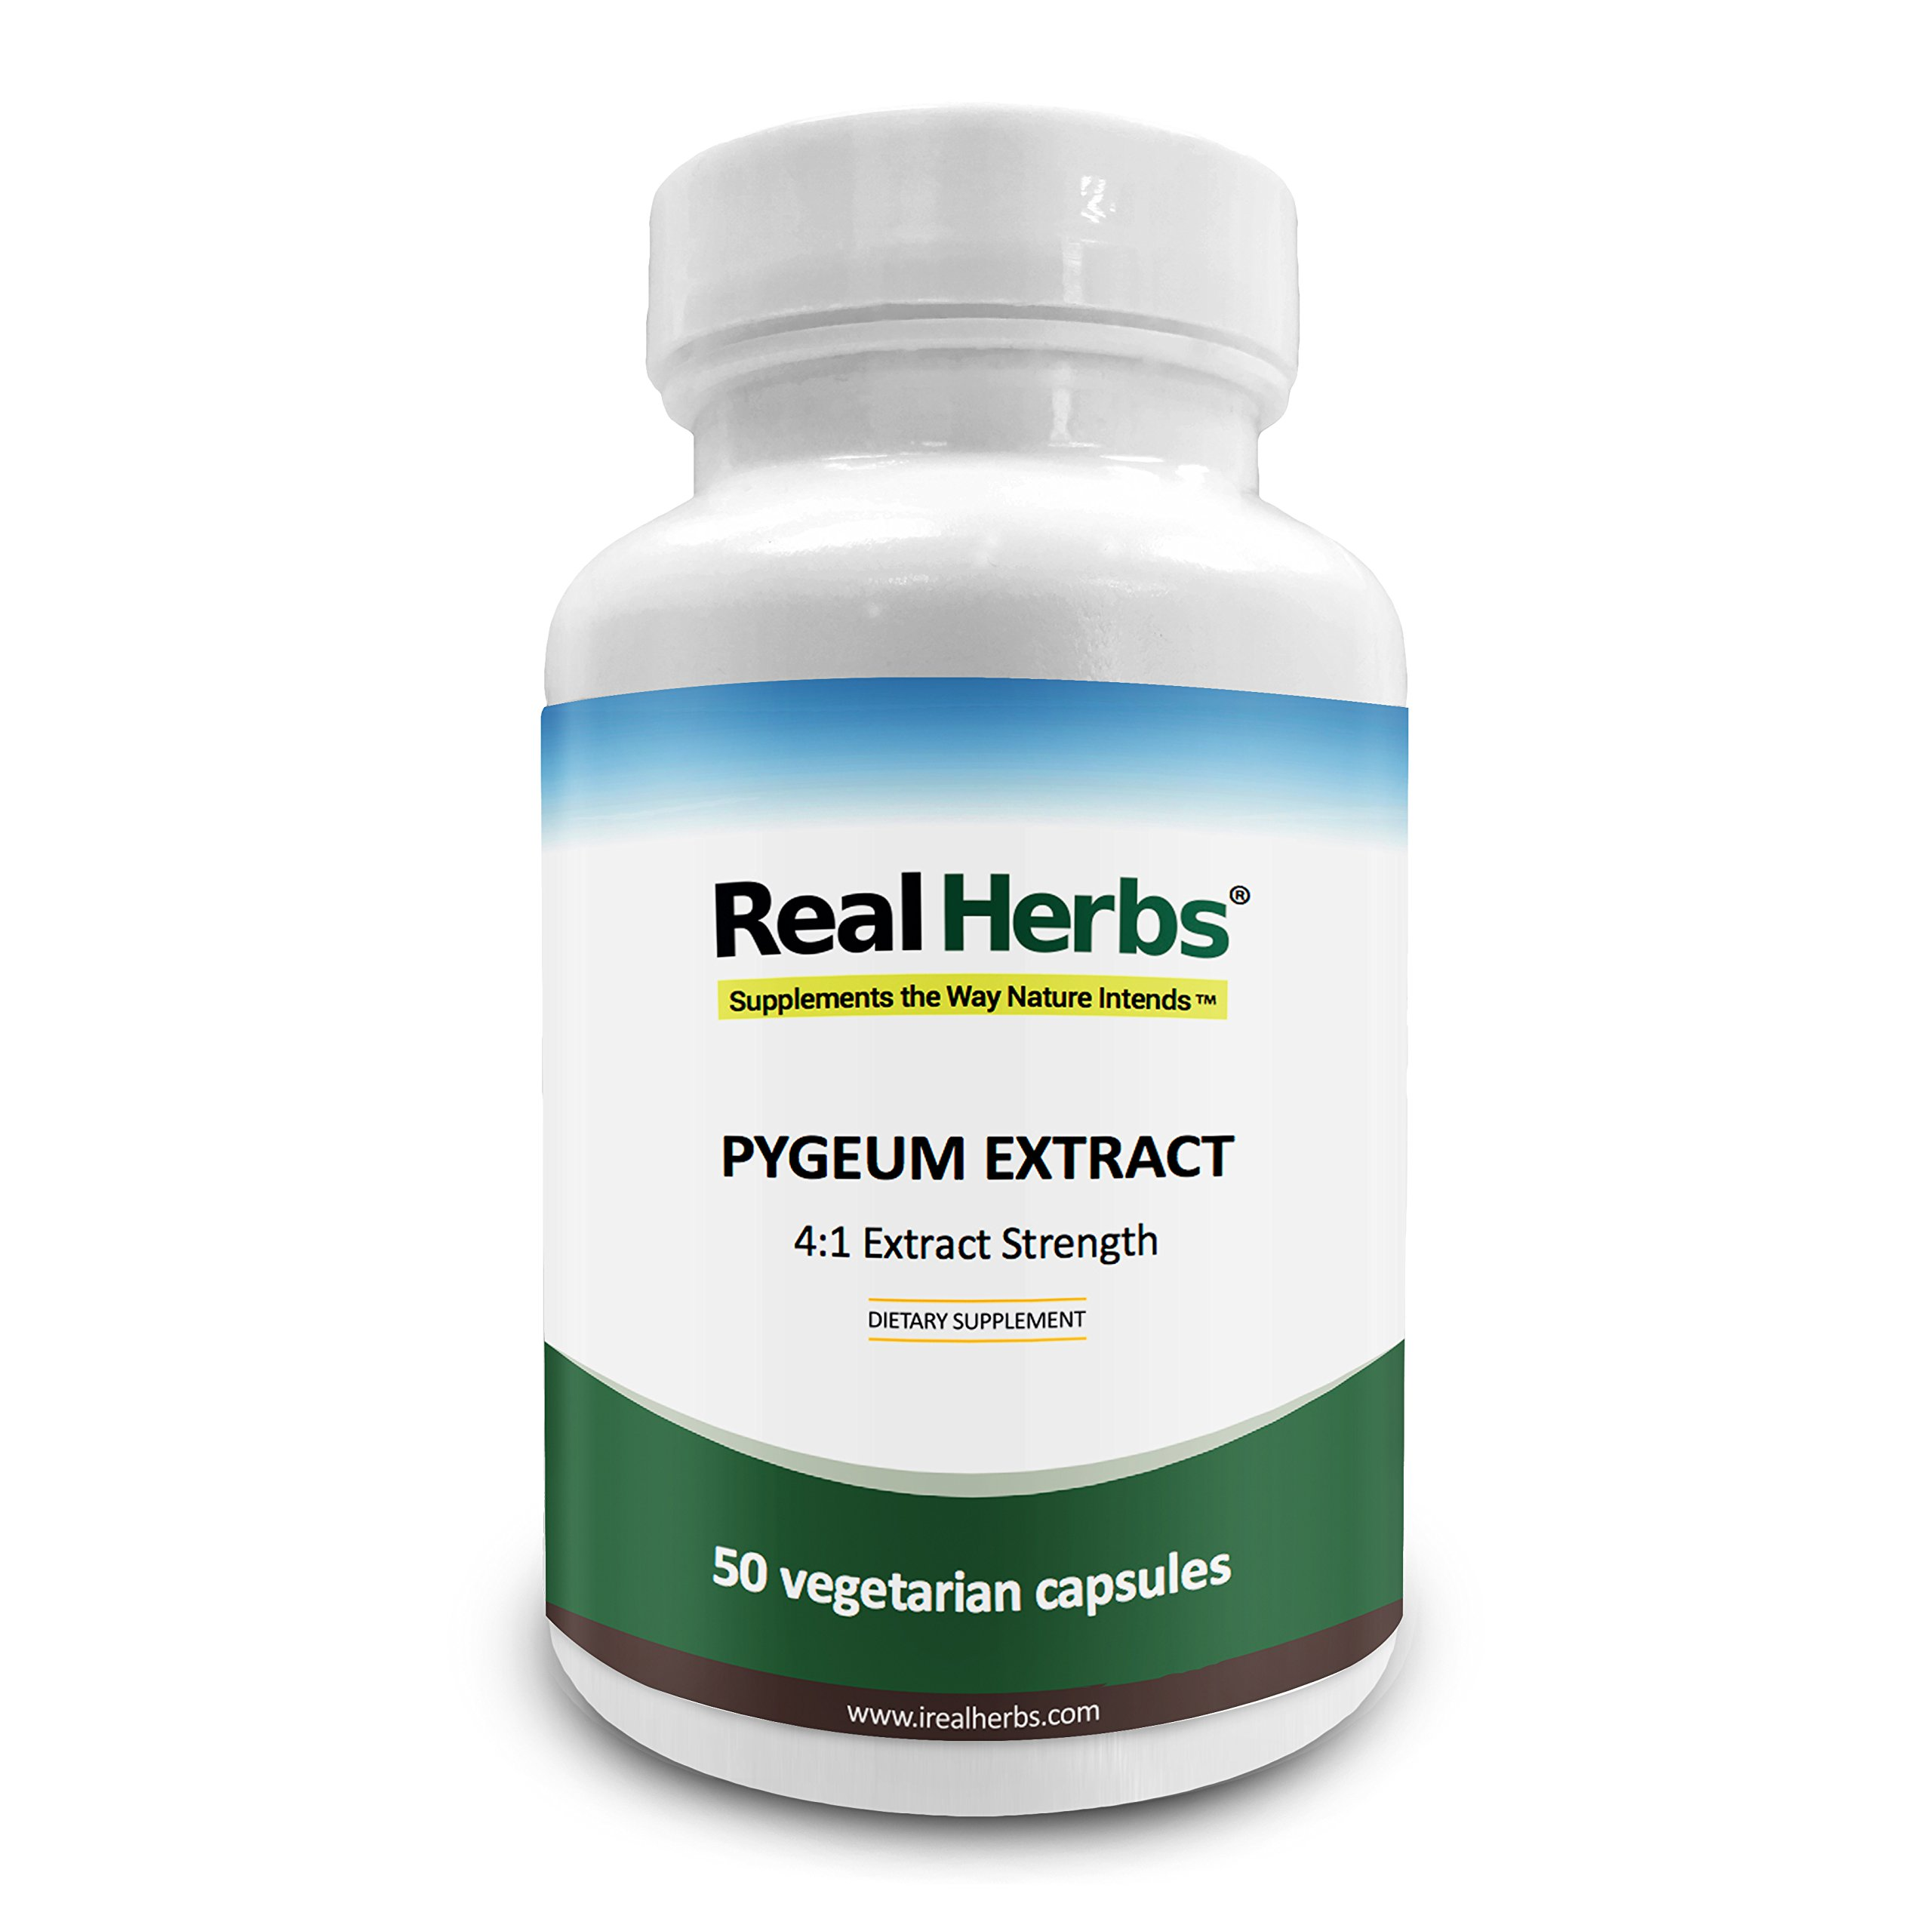 Real Herbs Pygeum Bark Extract with 4 :1 Extract Strength - Supports Urinary Tract Health - 50 Vegetarian Capsules